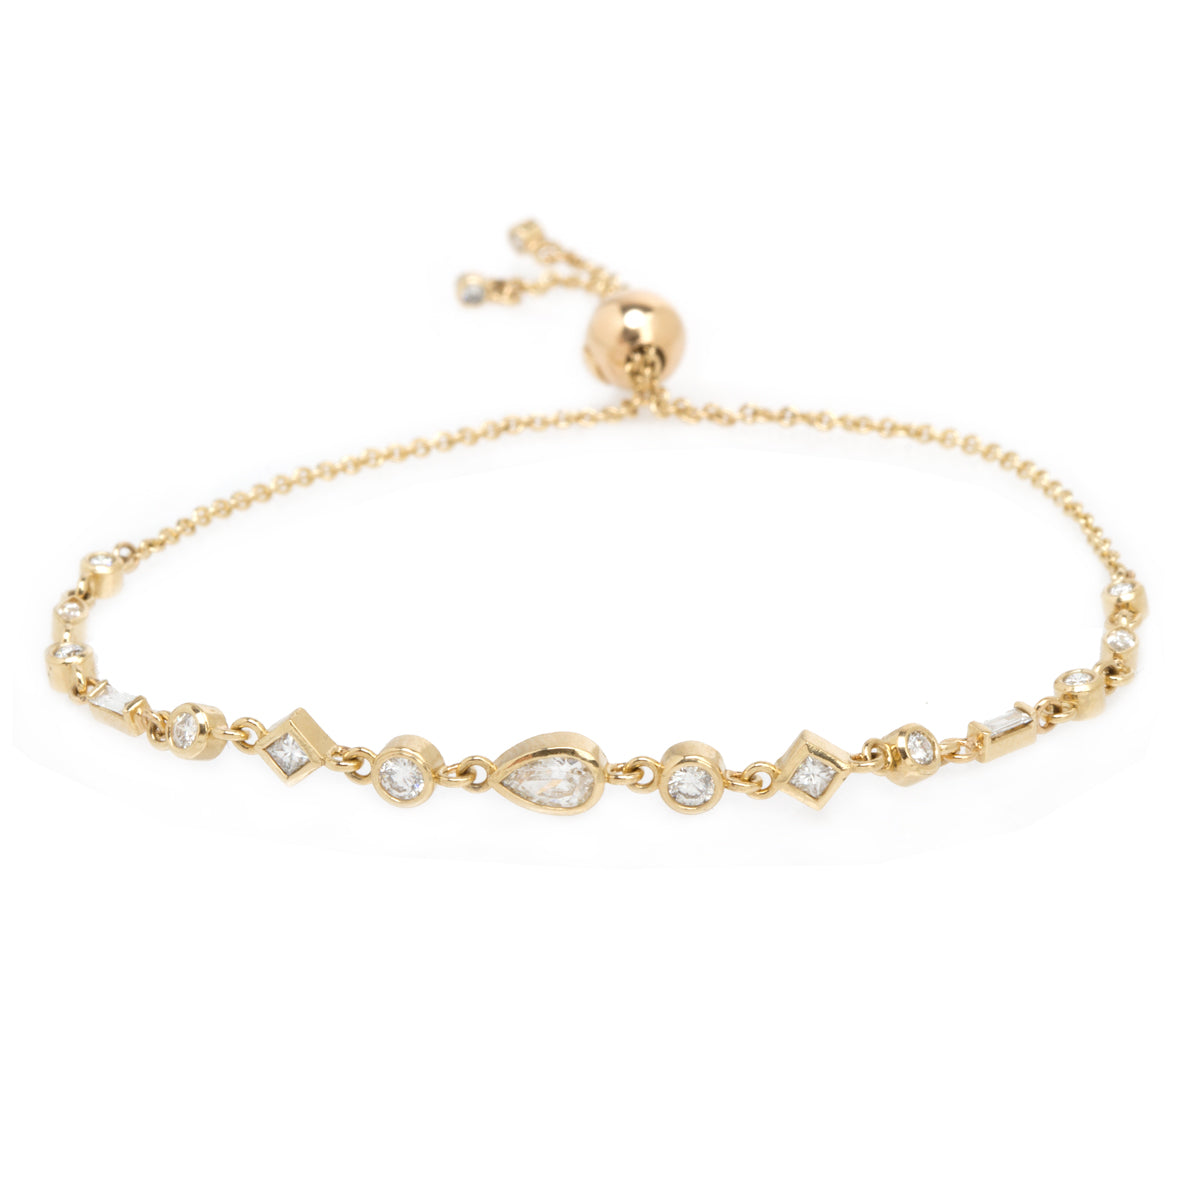 14k large mixed diamond linked bolo bracelet